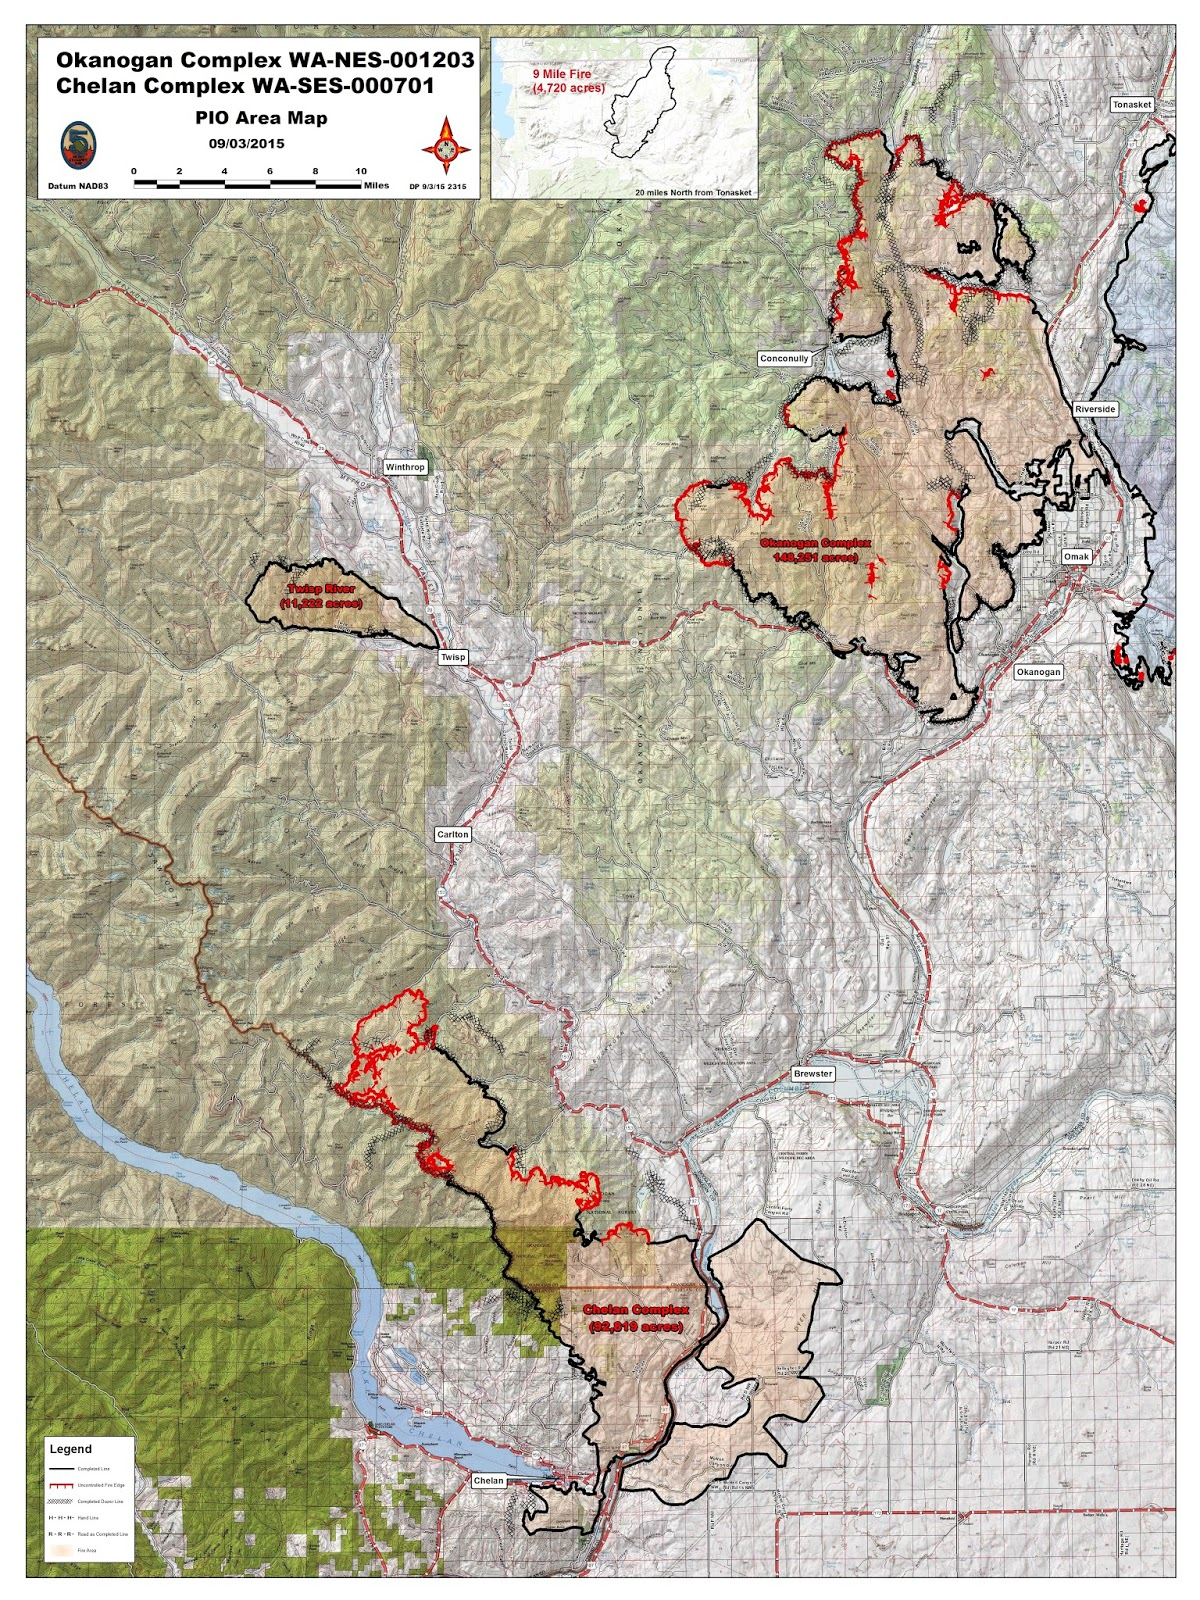 08 27 2015 progression map